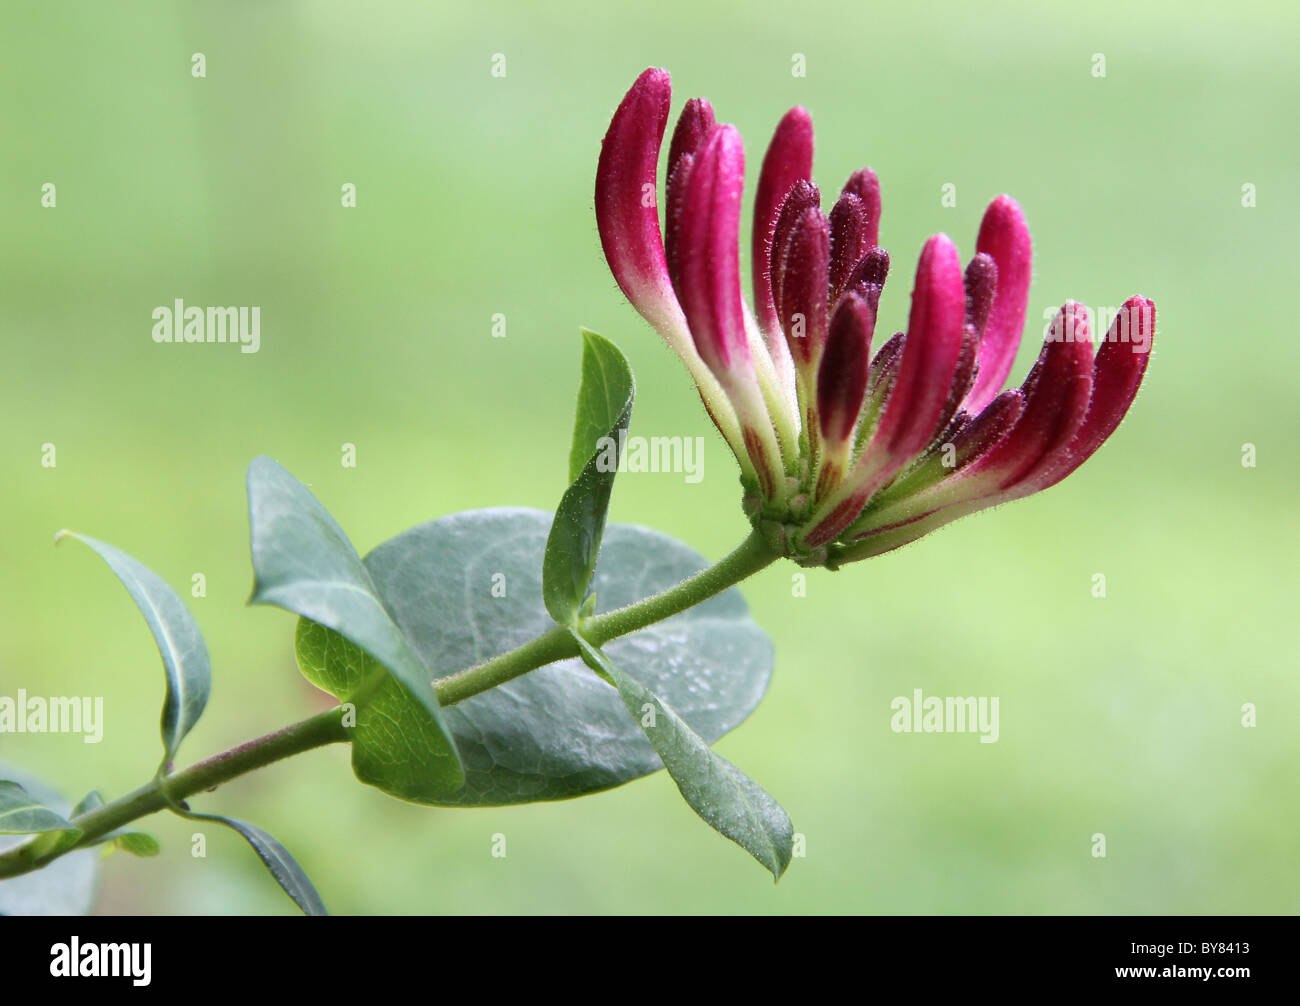 Image of a nearby honeysuckle bloom from. - Stock Image